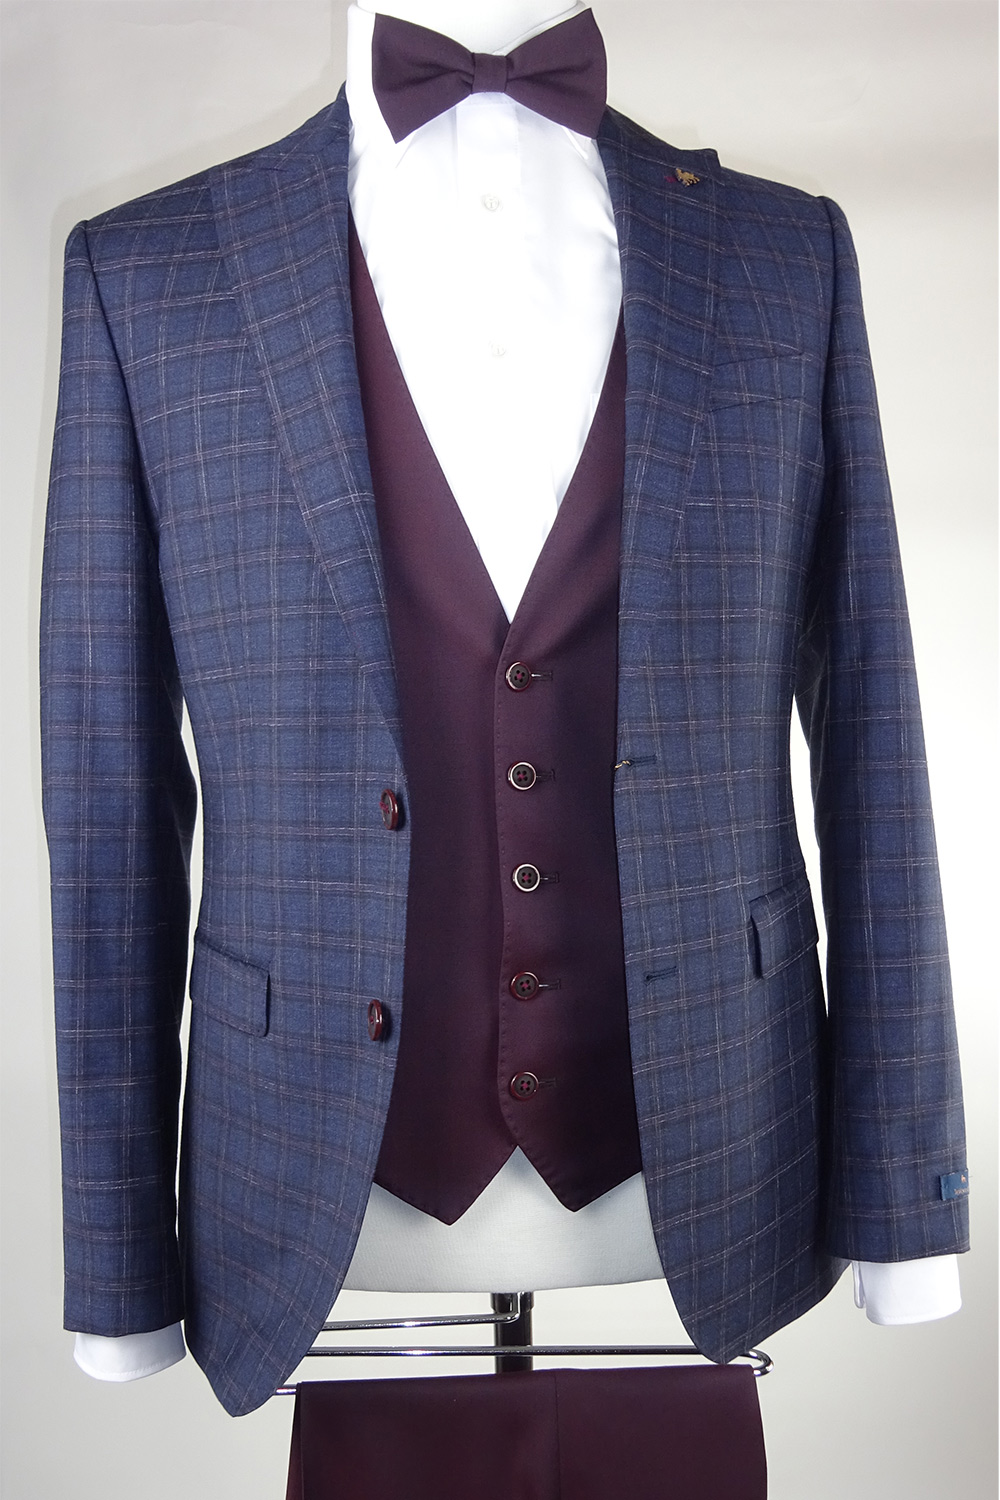 Burgundy check suit Burgundy Single-breasted waistcoat